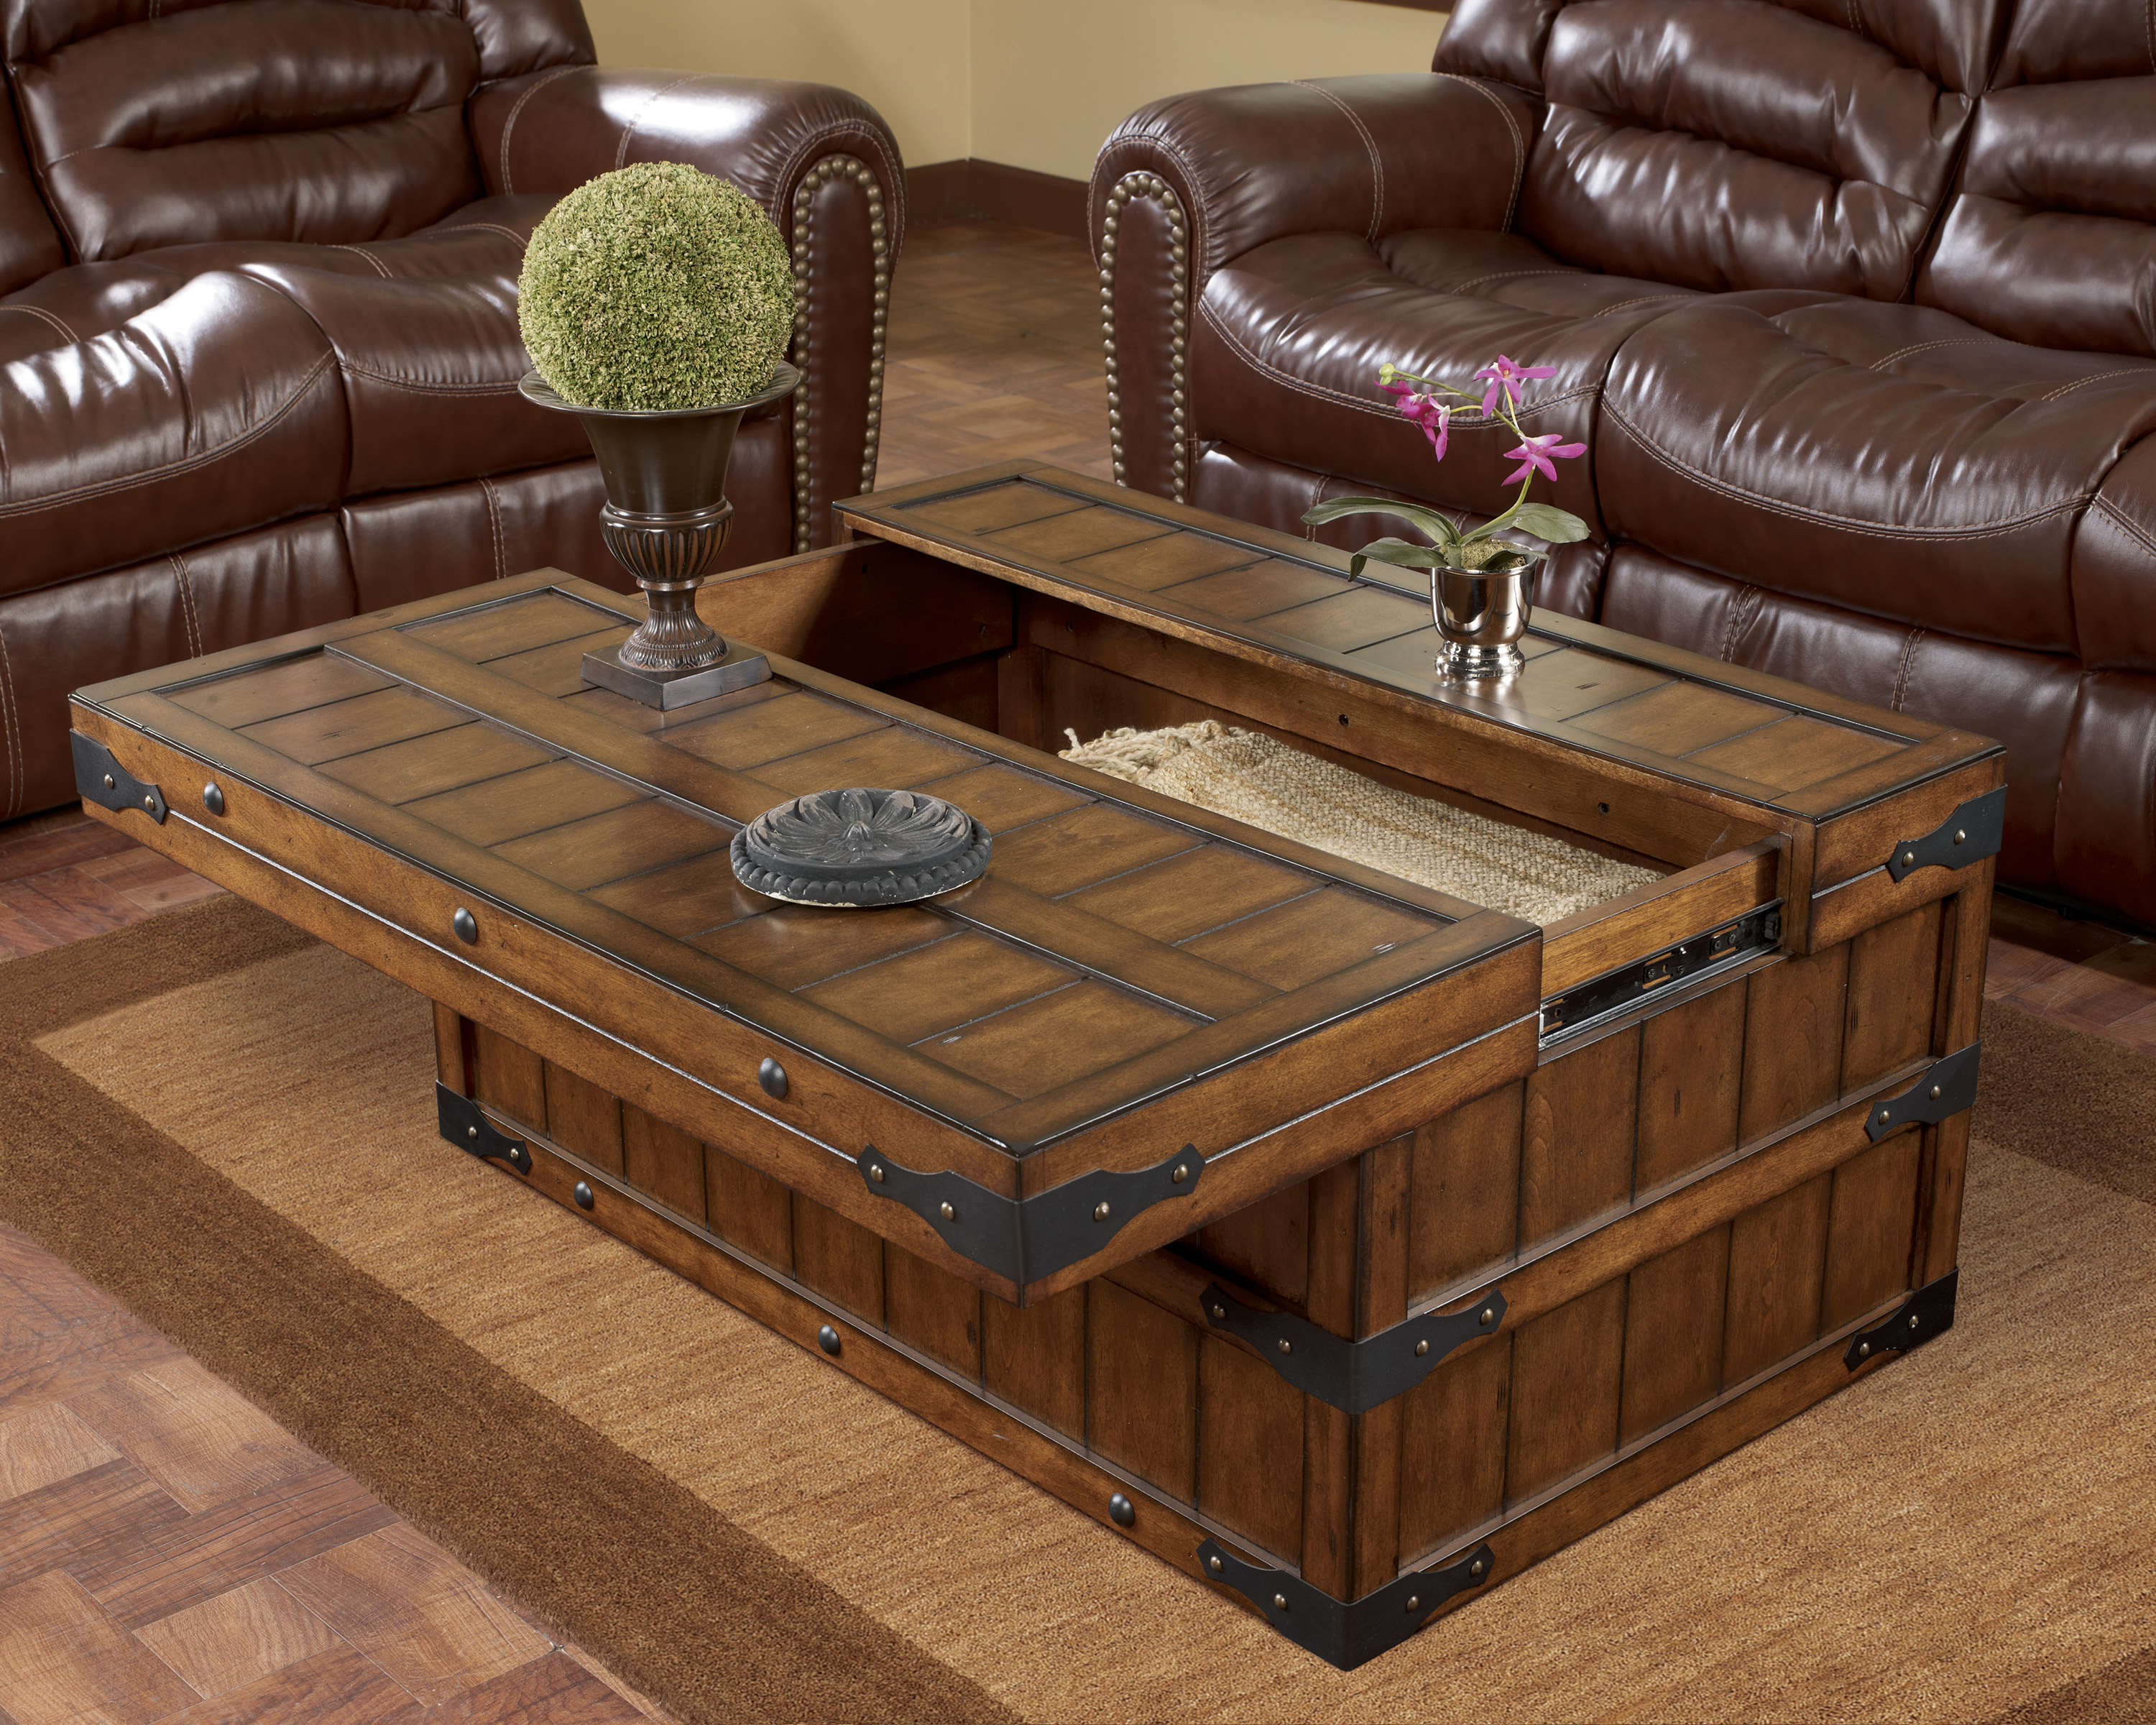 Rustic Coffee Tables 2017 best of rustic coffee tables and end tables